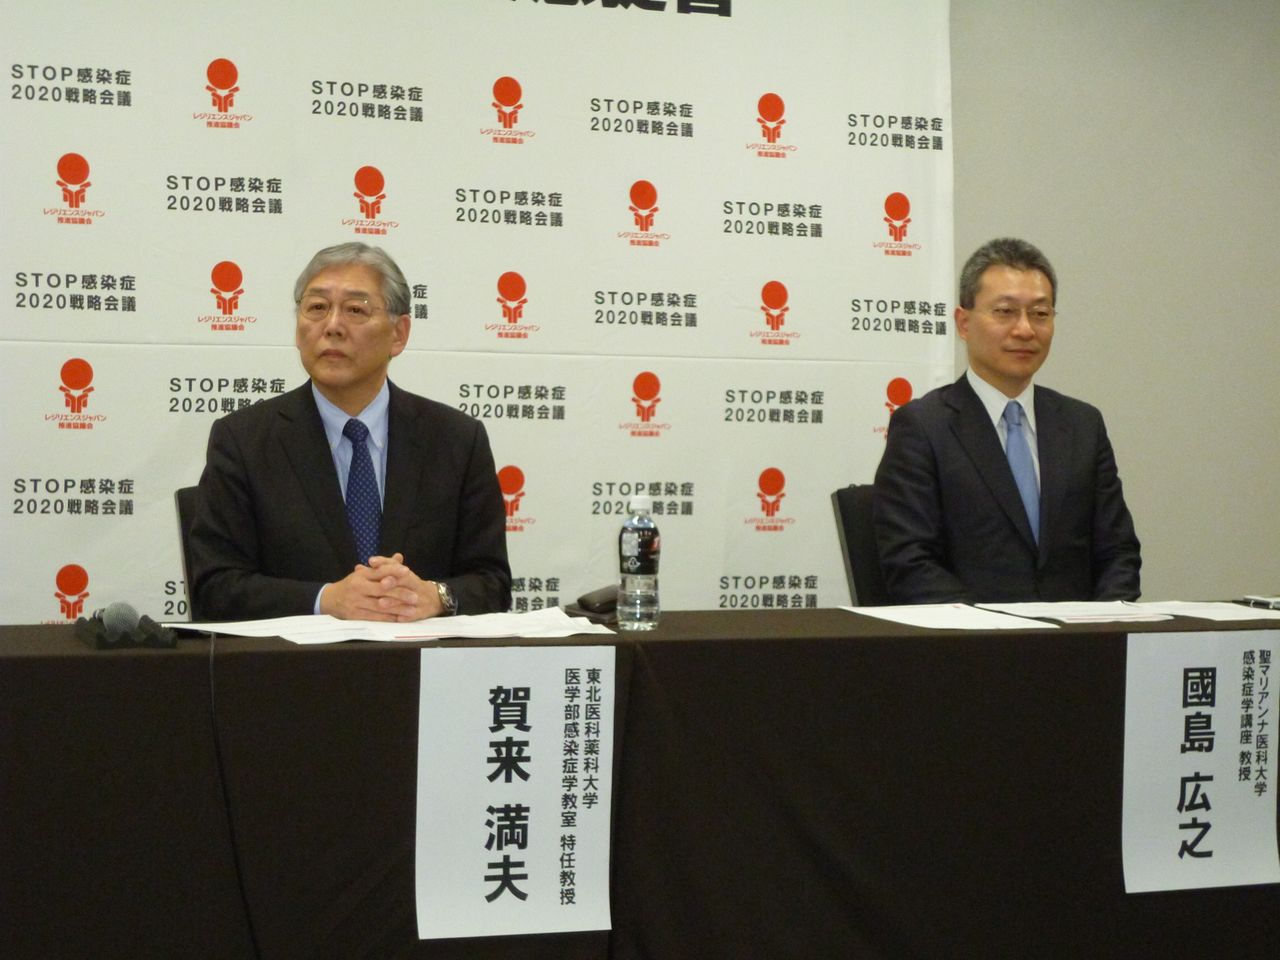 Kaku Mitsuo (left), a specially appointed professor at Tōhoku Medical and Pharmaceutical University and professor emeritus at Tōhoku University, and Kunishima Hiroyuki, a professor at St. Marianna Medical University, speak at the Stop Infectious Diseases 2020 Strategic Council press conference held in Tokyo on February 10, 2020.